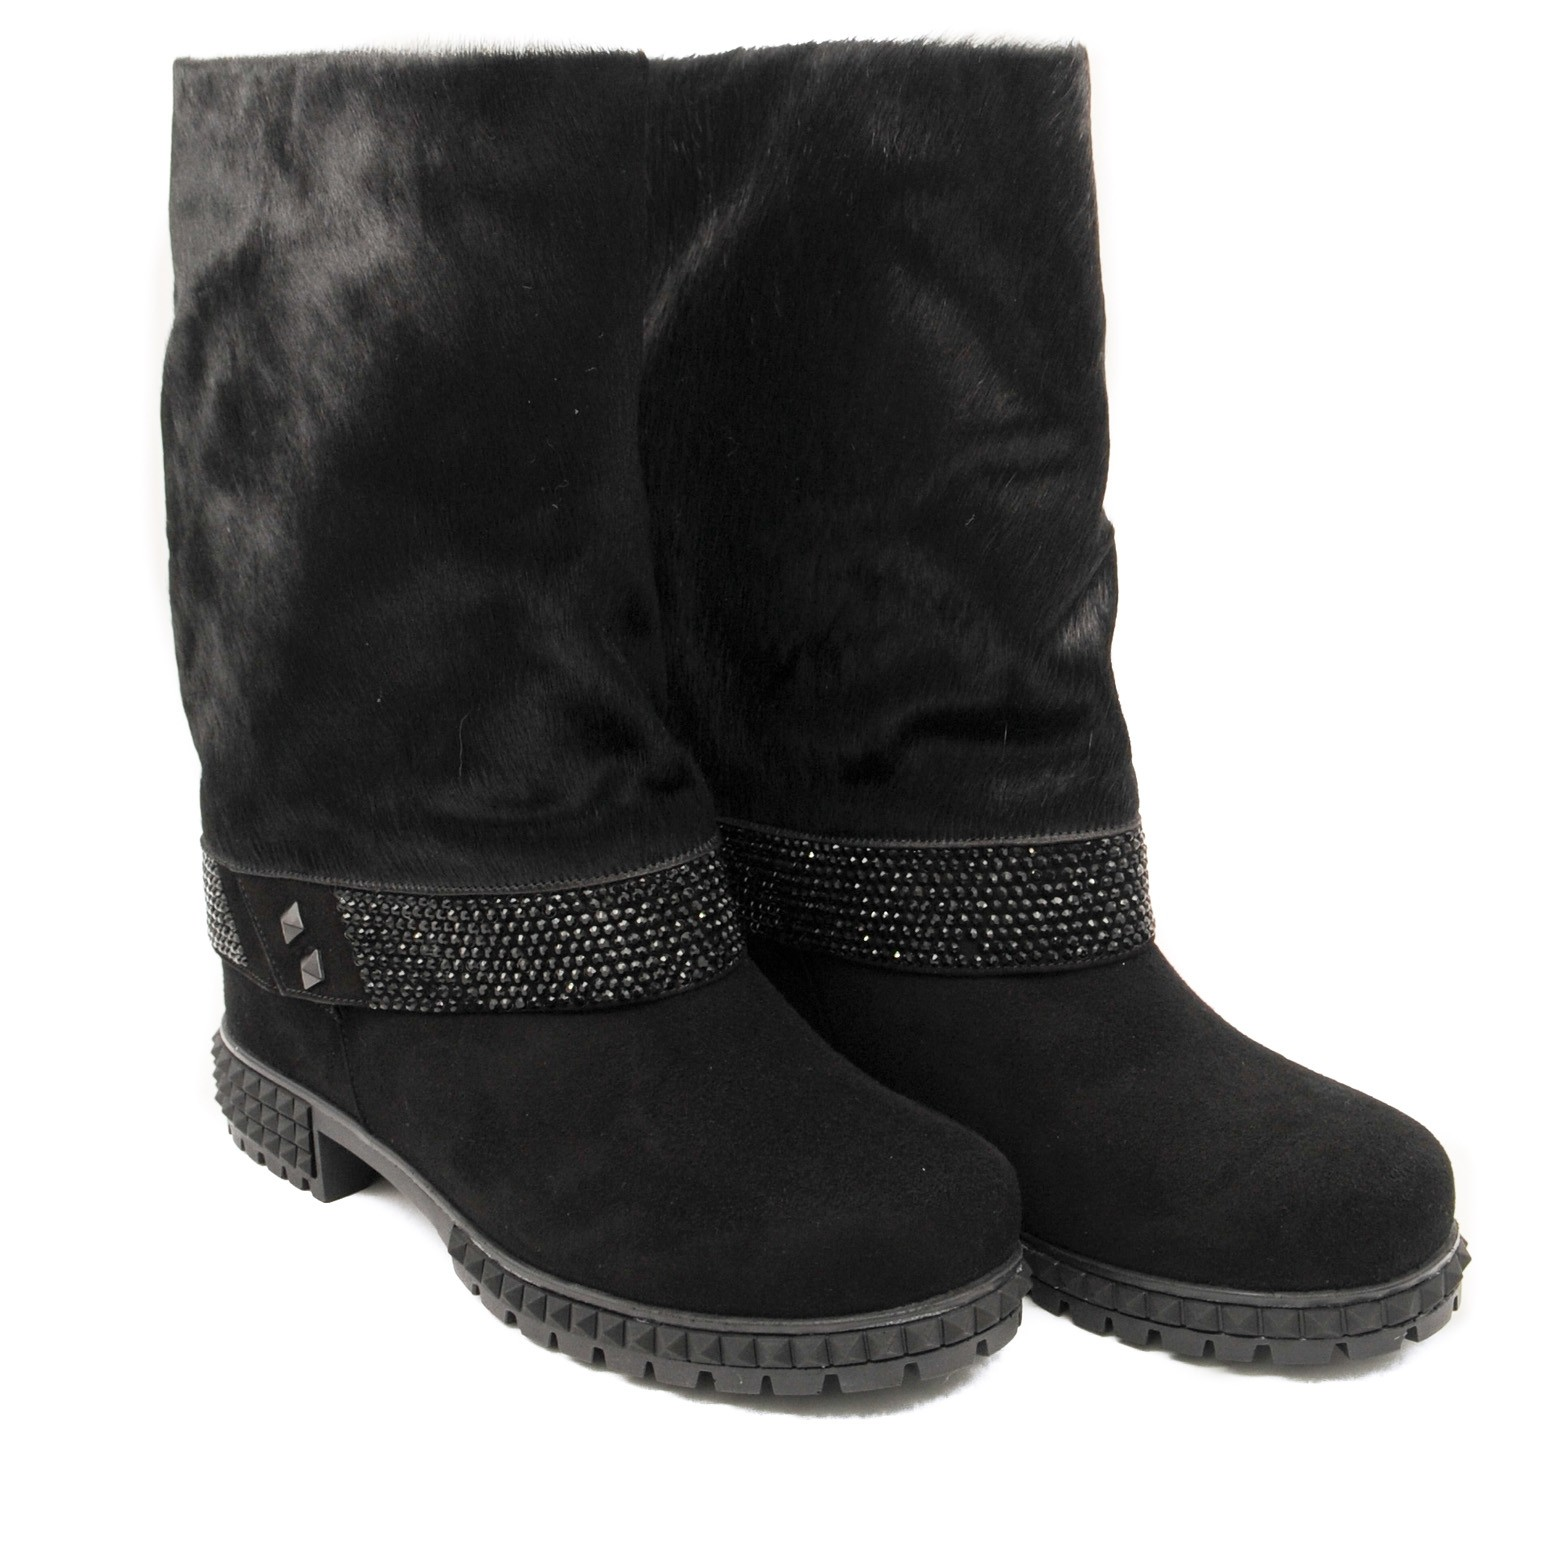 Fashionable Slouchy Boots with Outer Fur Lined Rubber Soles and Sparkley Patterned Band